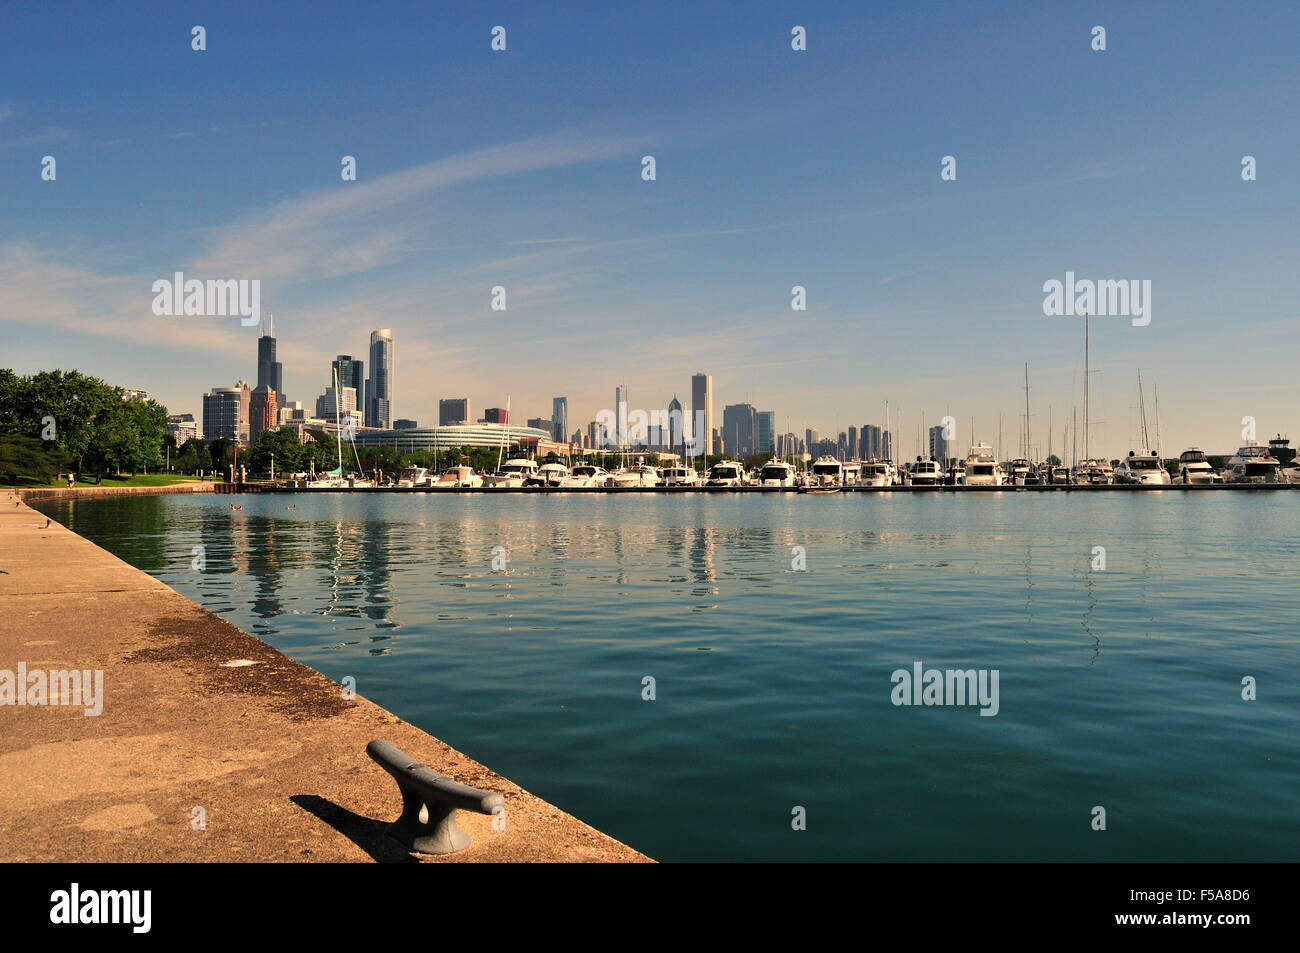 The water of Lake Michigan in Burnham Harbor provides a foreground for  a portion of the city skyline. Chicago, - Stock Image